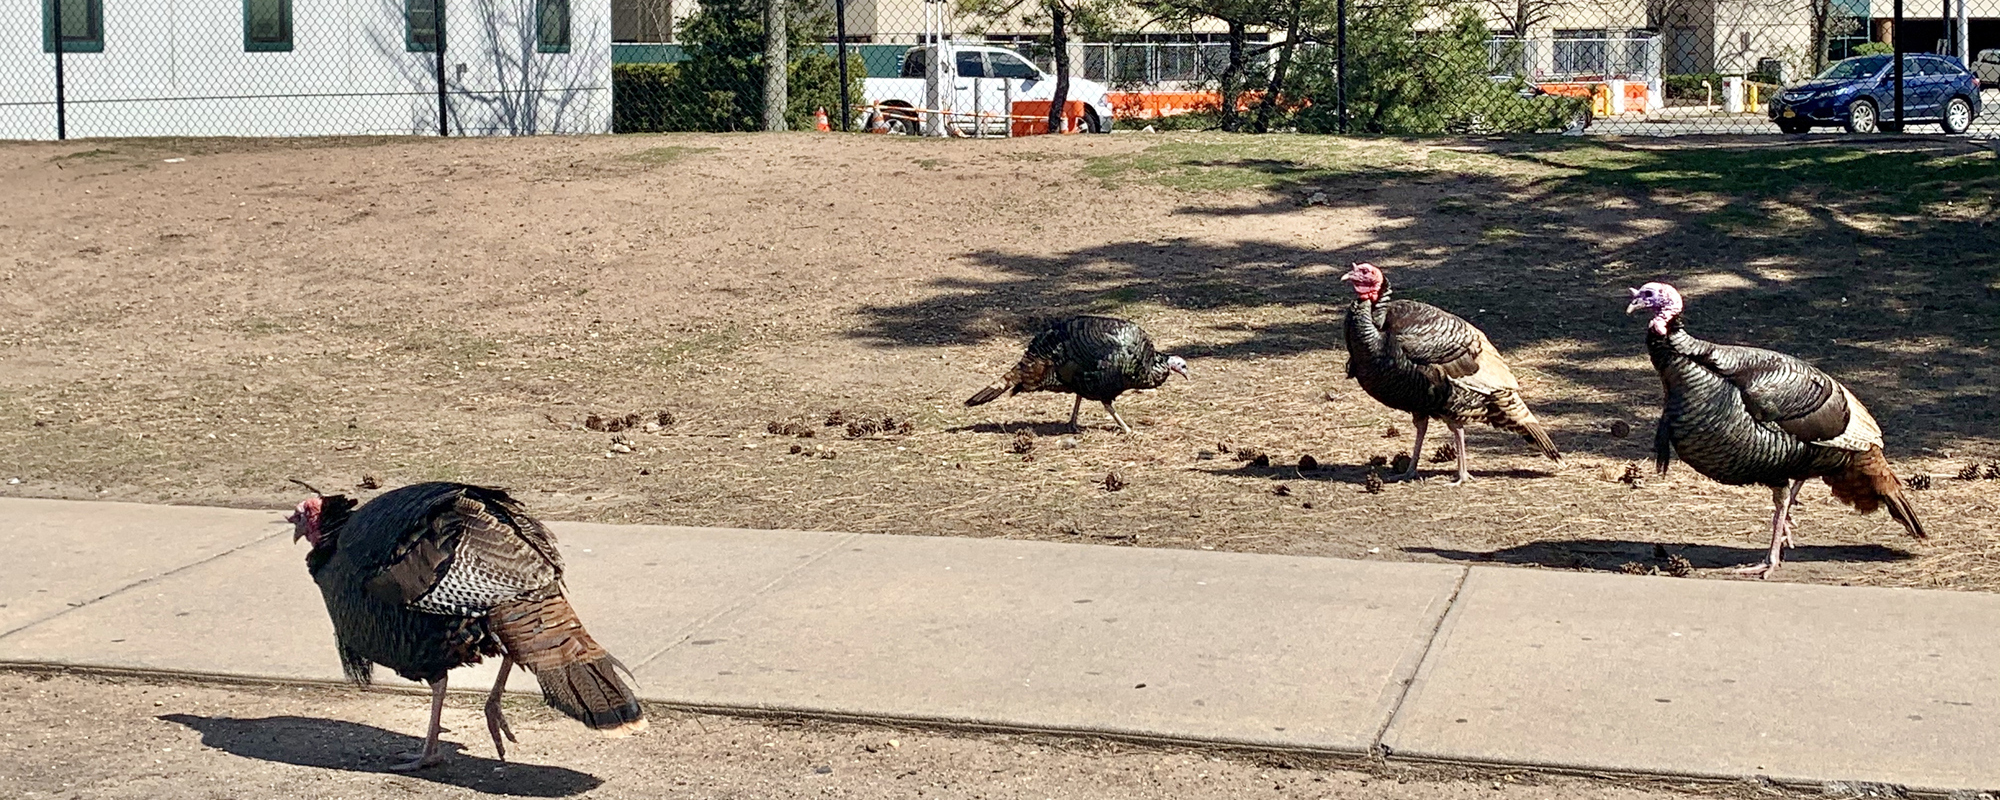 Wild turkeys, once hunted to near extinction, on the streets of New York during lockdown (picture: Getty)